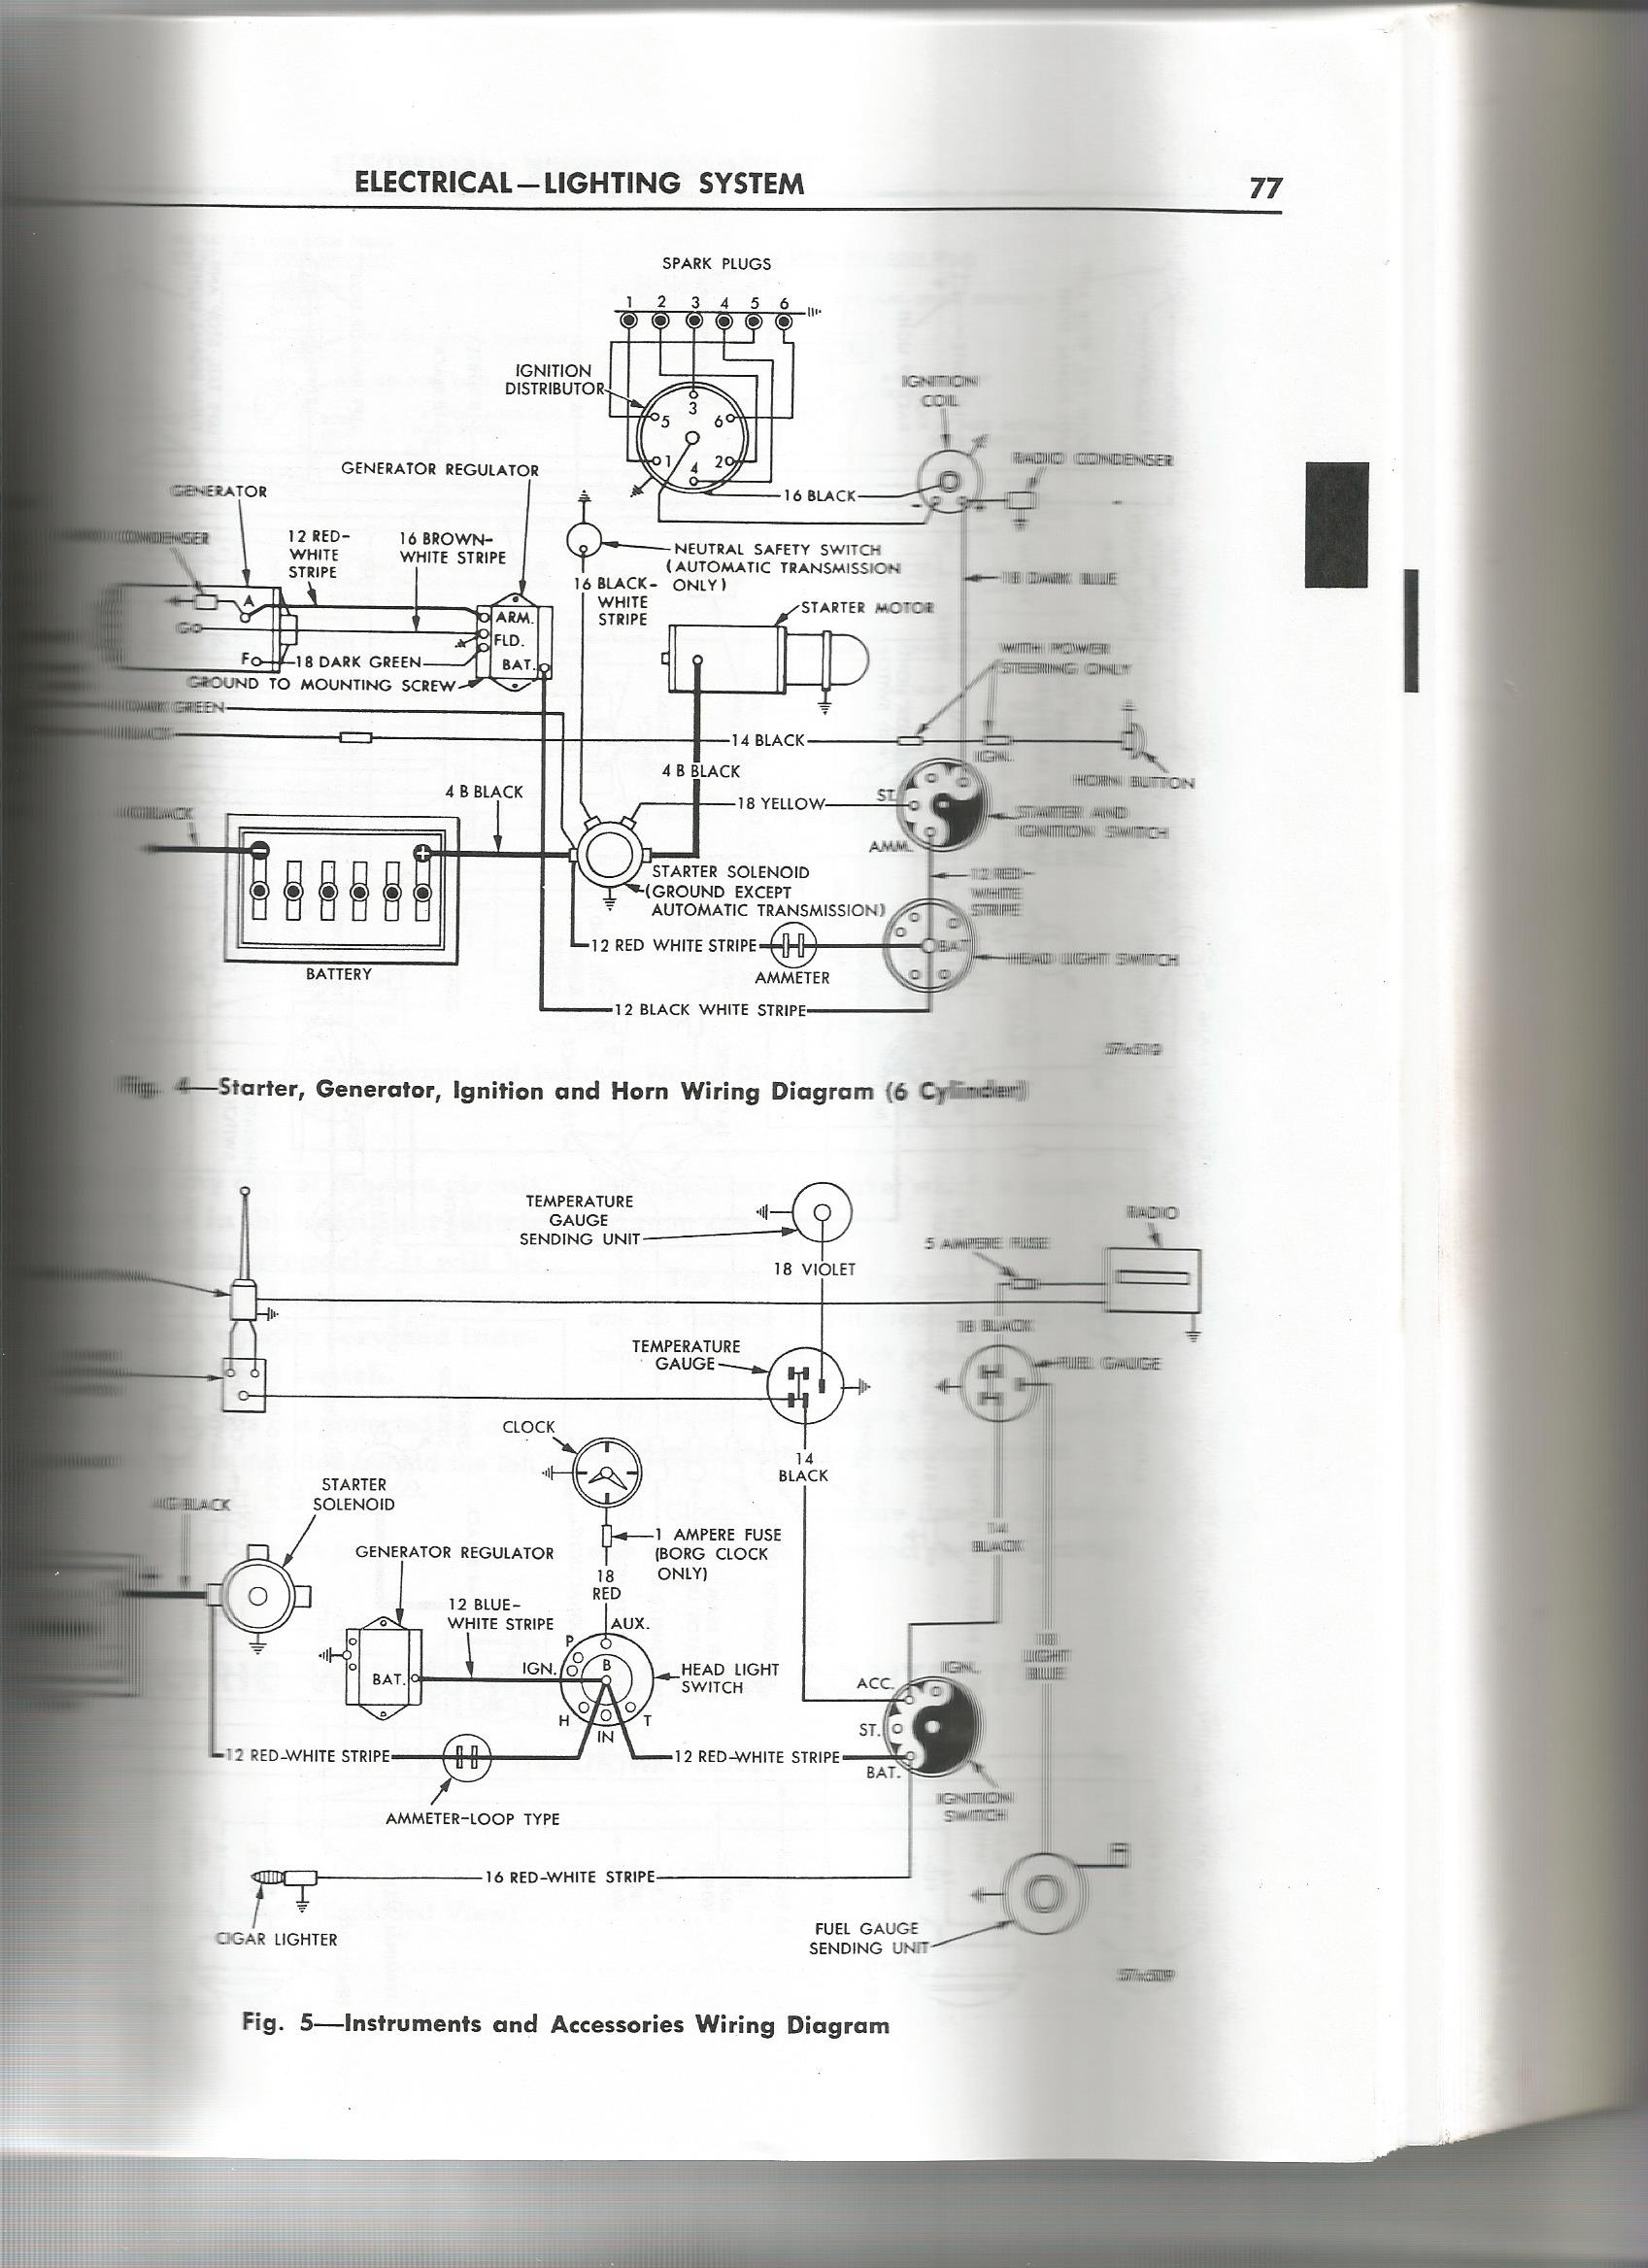 positive ground plymouth wiring diagram farmall 140 headlight 1934 Chrysler Positive Ground Wiring-Diagram at soozxer.org